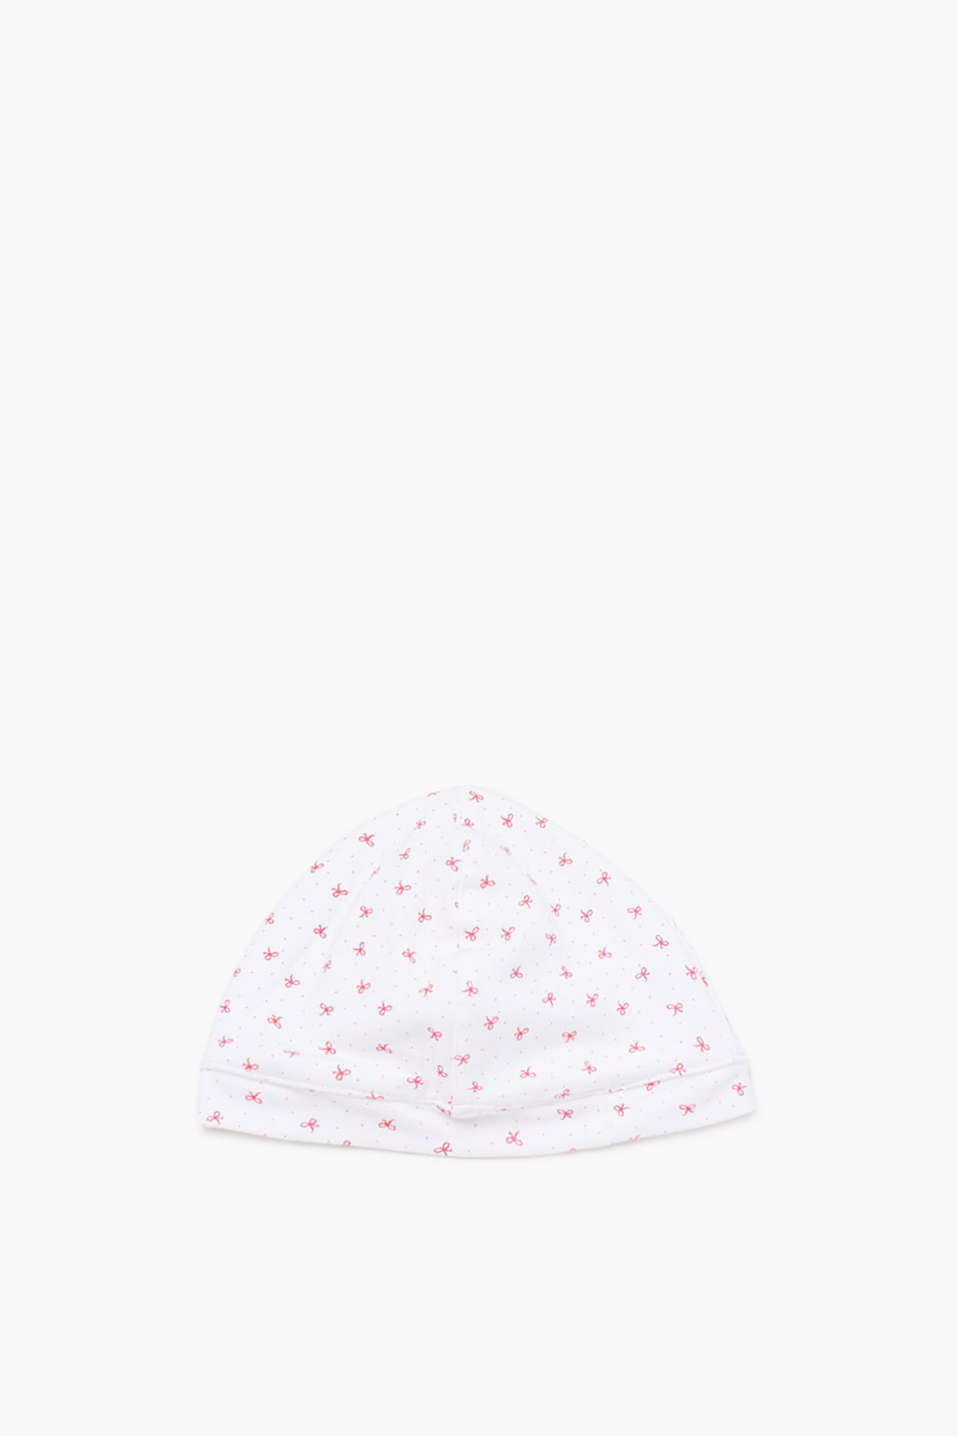 Soft hat with pretty bow pattern, organic cotton